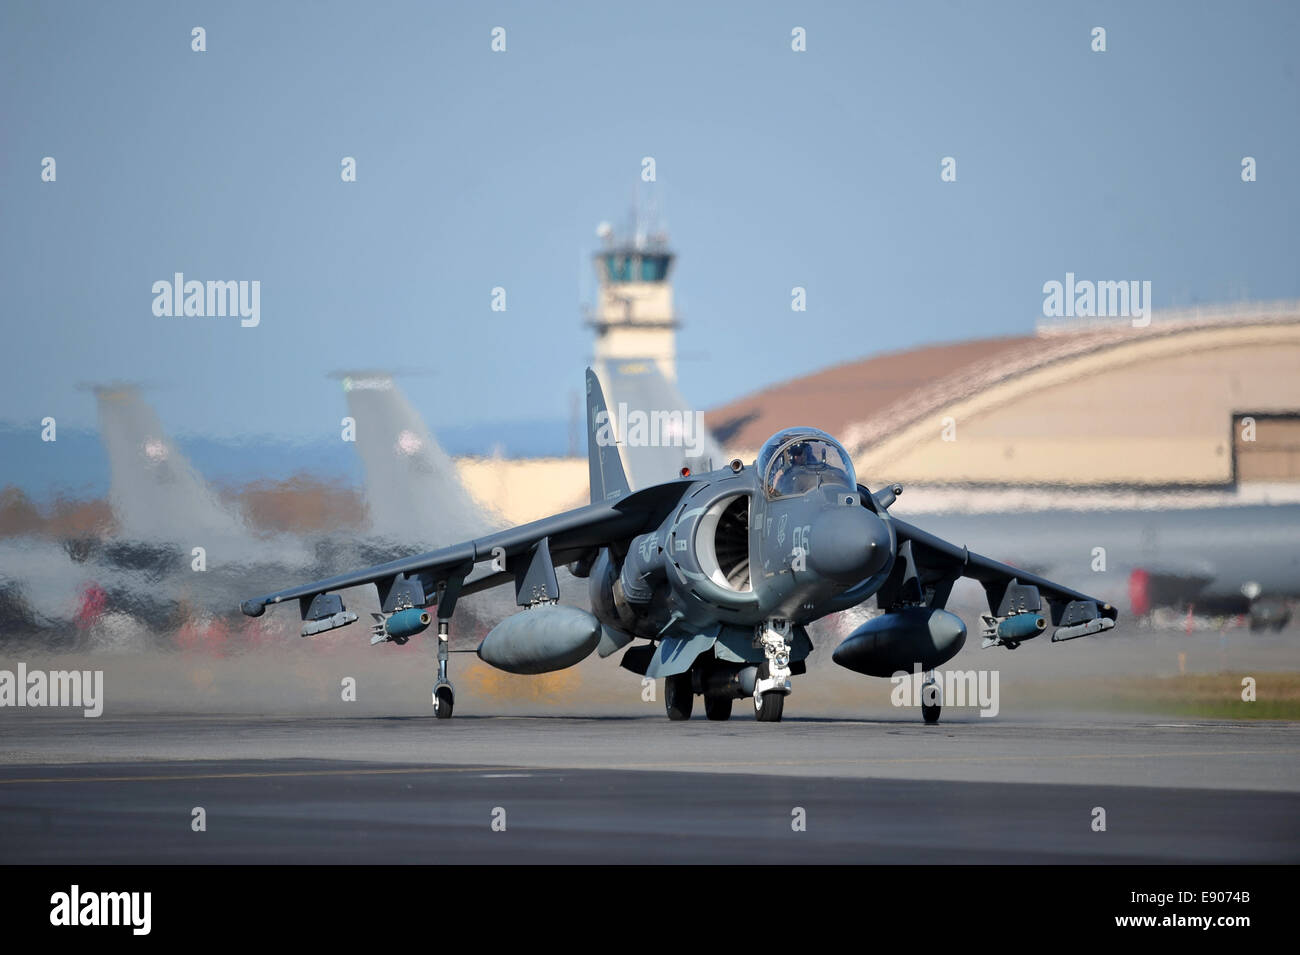 A U.S. Marine Corps AV-8B Harrier II aircraft assigned to Marine Attack Squadron (VMA) 311 taxis on the flight line Stock Photo